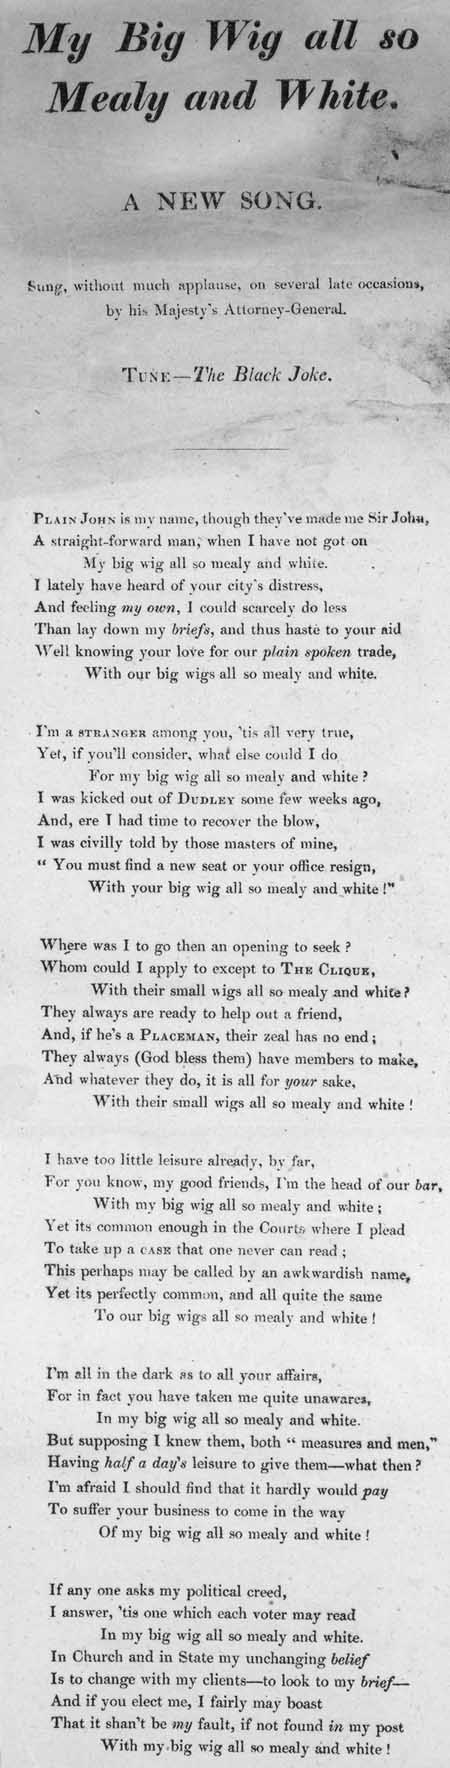 Broadside ballad entitled 'My Big Wig All So Mealy and White'